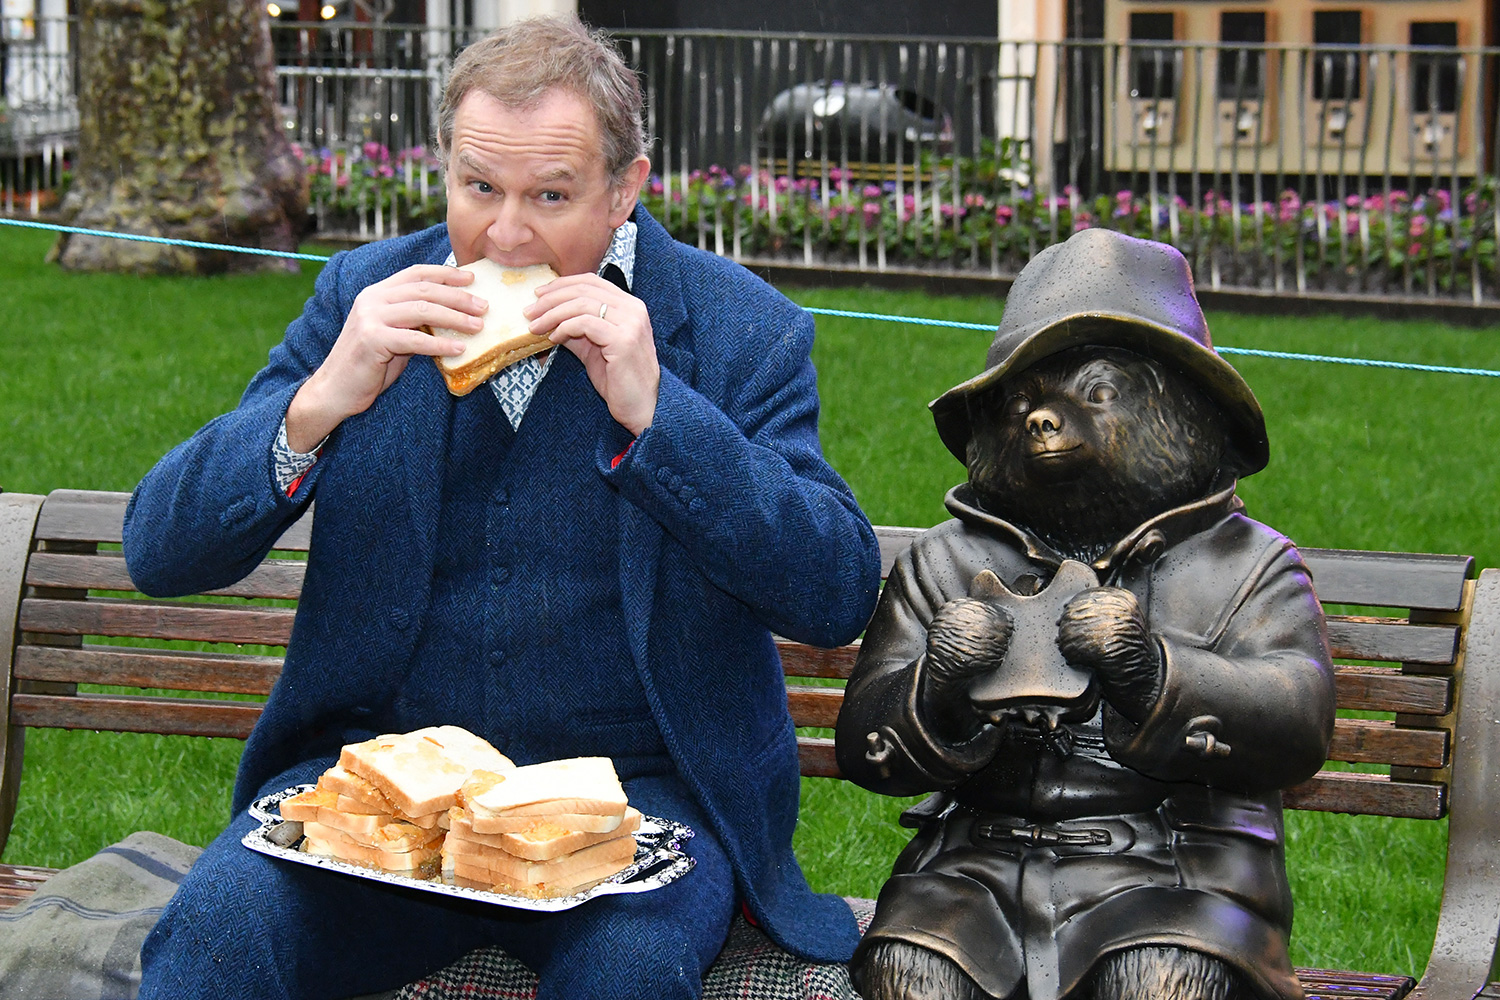 Hugh Bonneville unveils Paddington at unveiling of a trail of cinematic bronze statues in London's Leicester Square, celebrating the location's rich history as the home of film and marking the square's 350th anniversary.